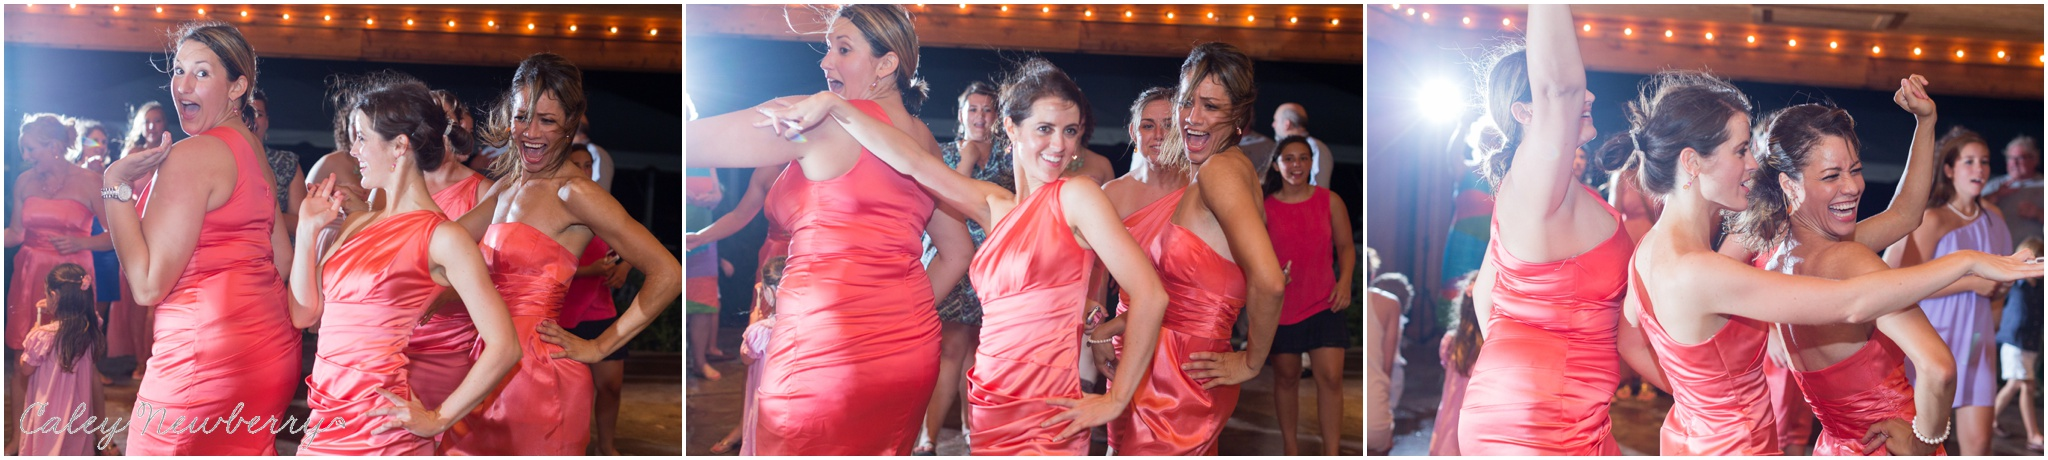 single-ladies-dance-at-wedding.jpg